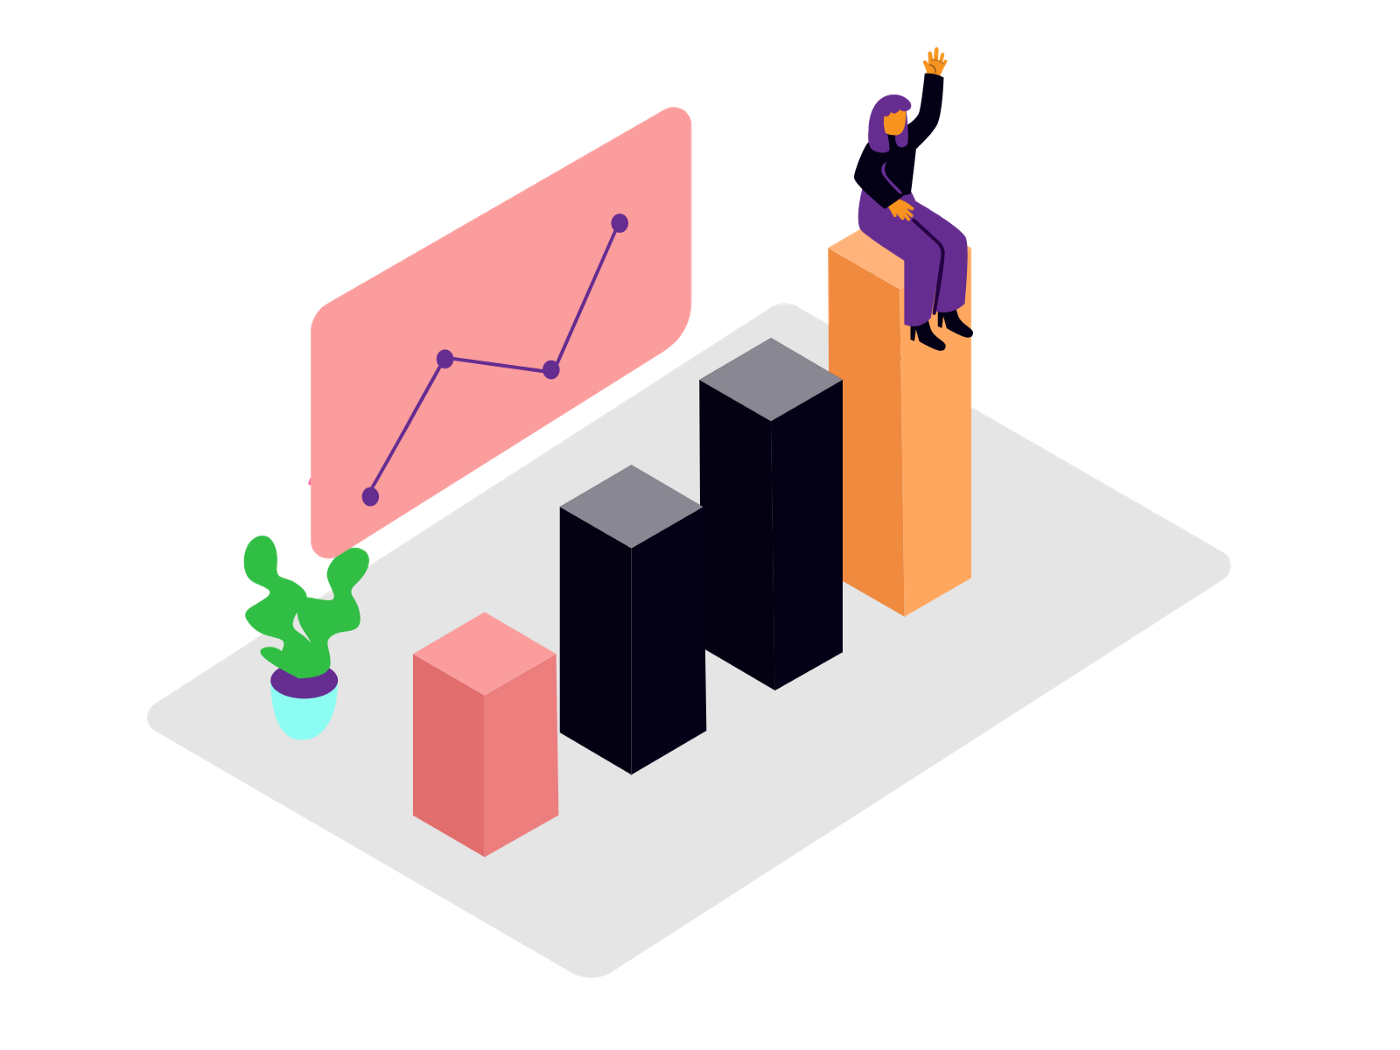 A 3D bar chart with a person sitting on the tallest bar and waving to others